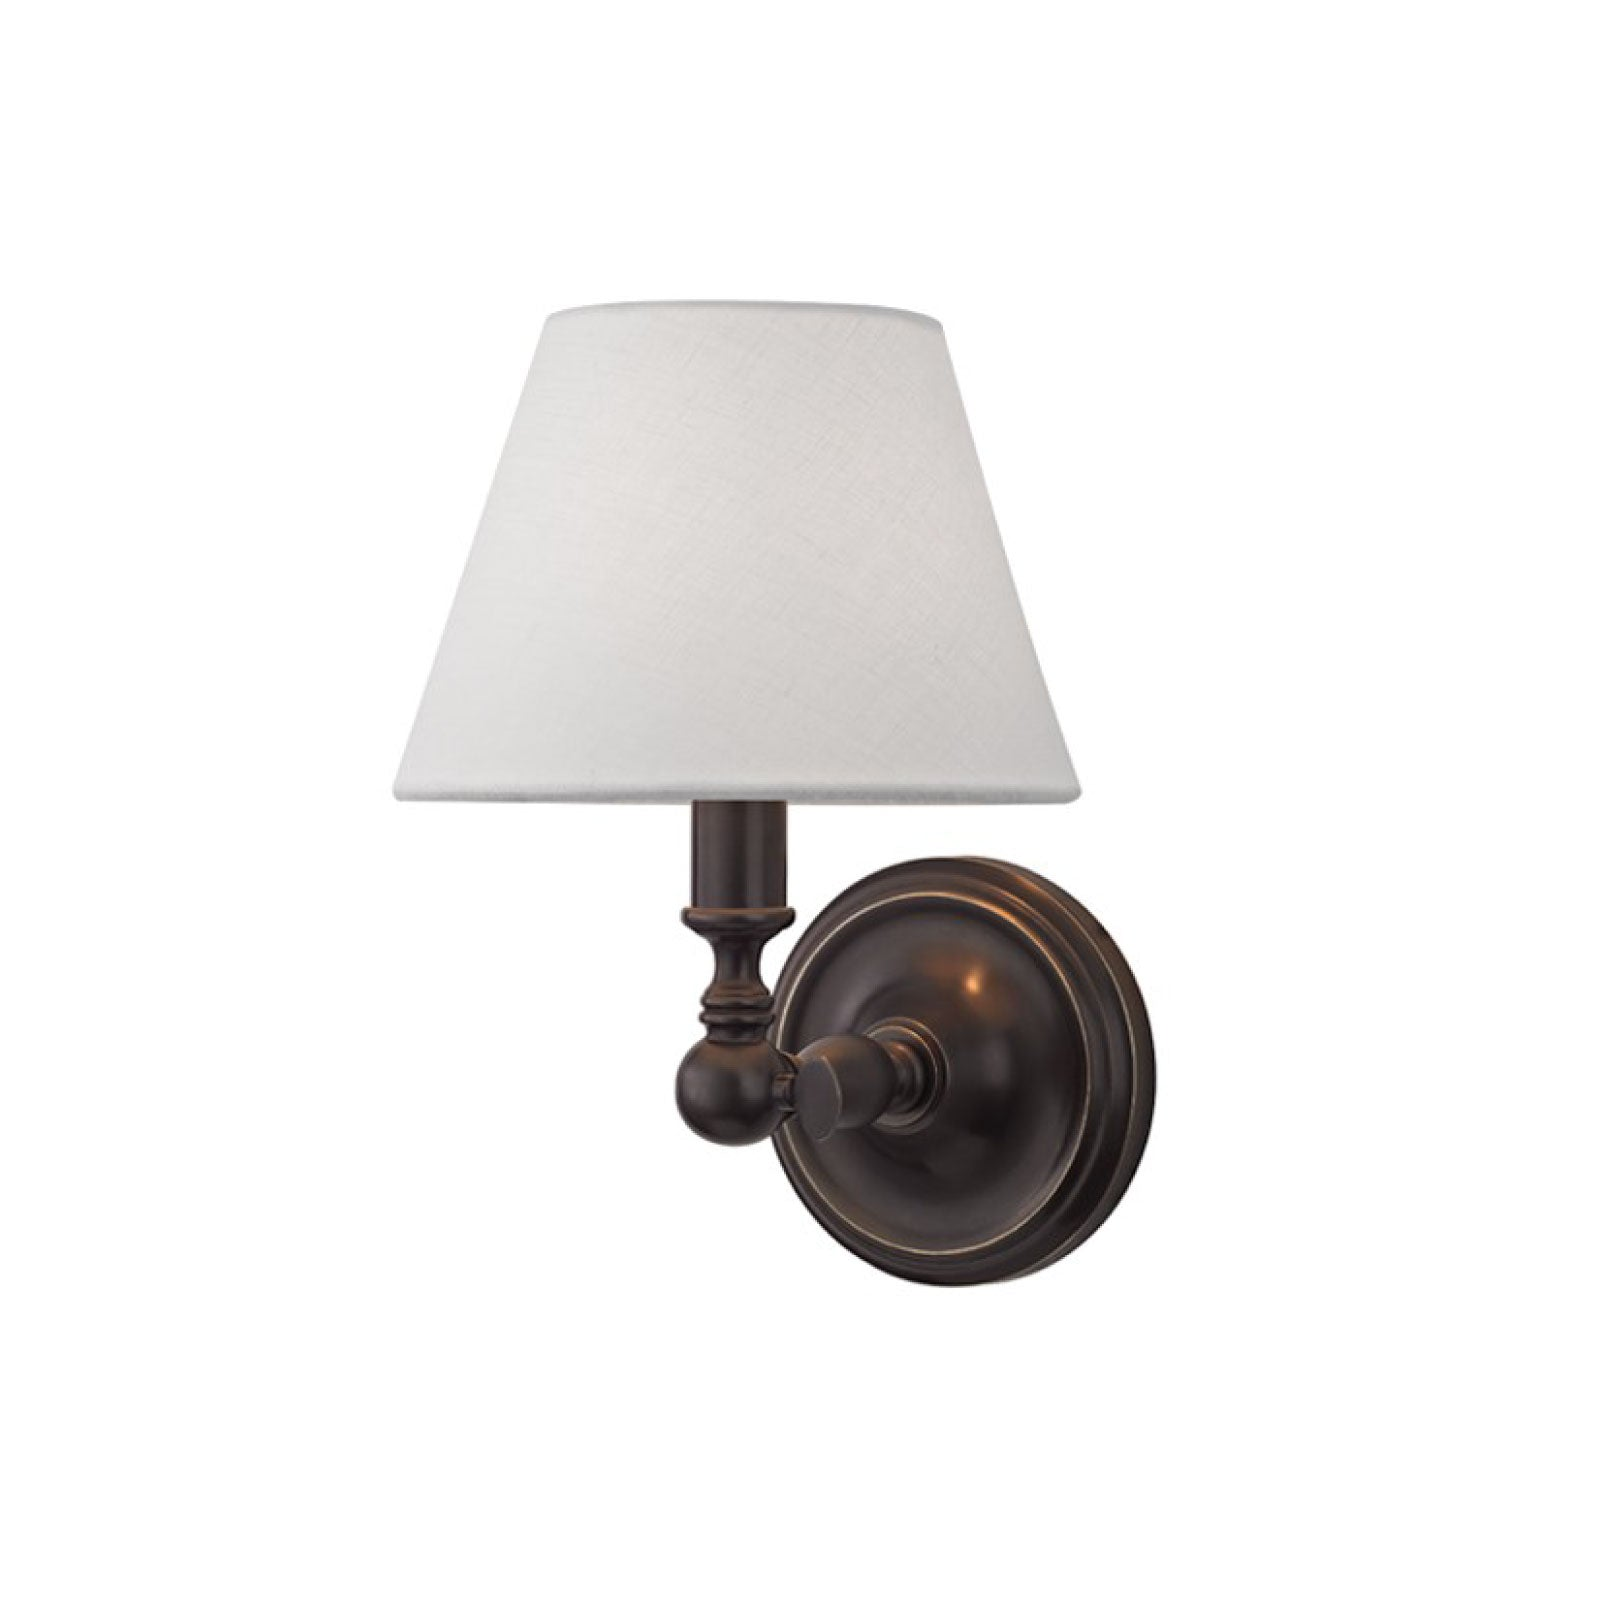 Club Sconce in Bronze